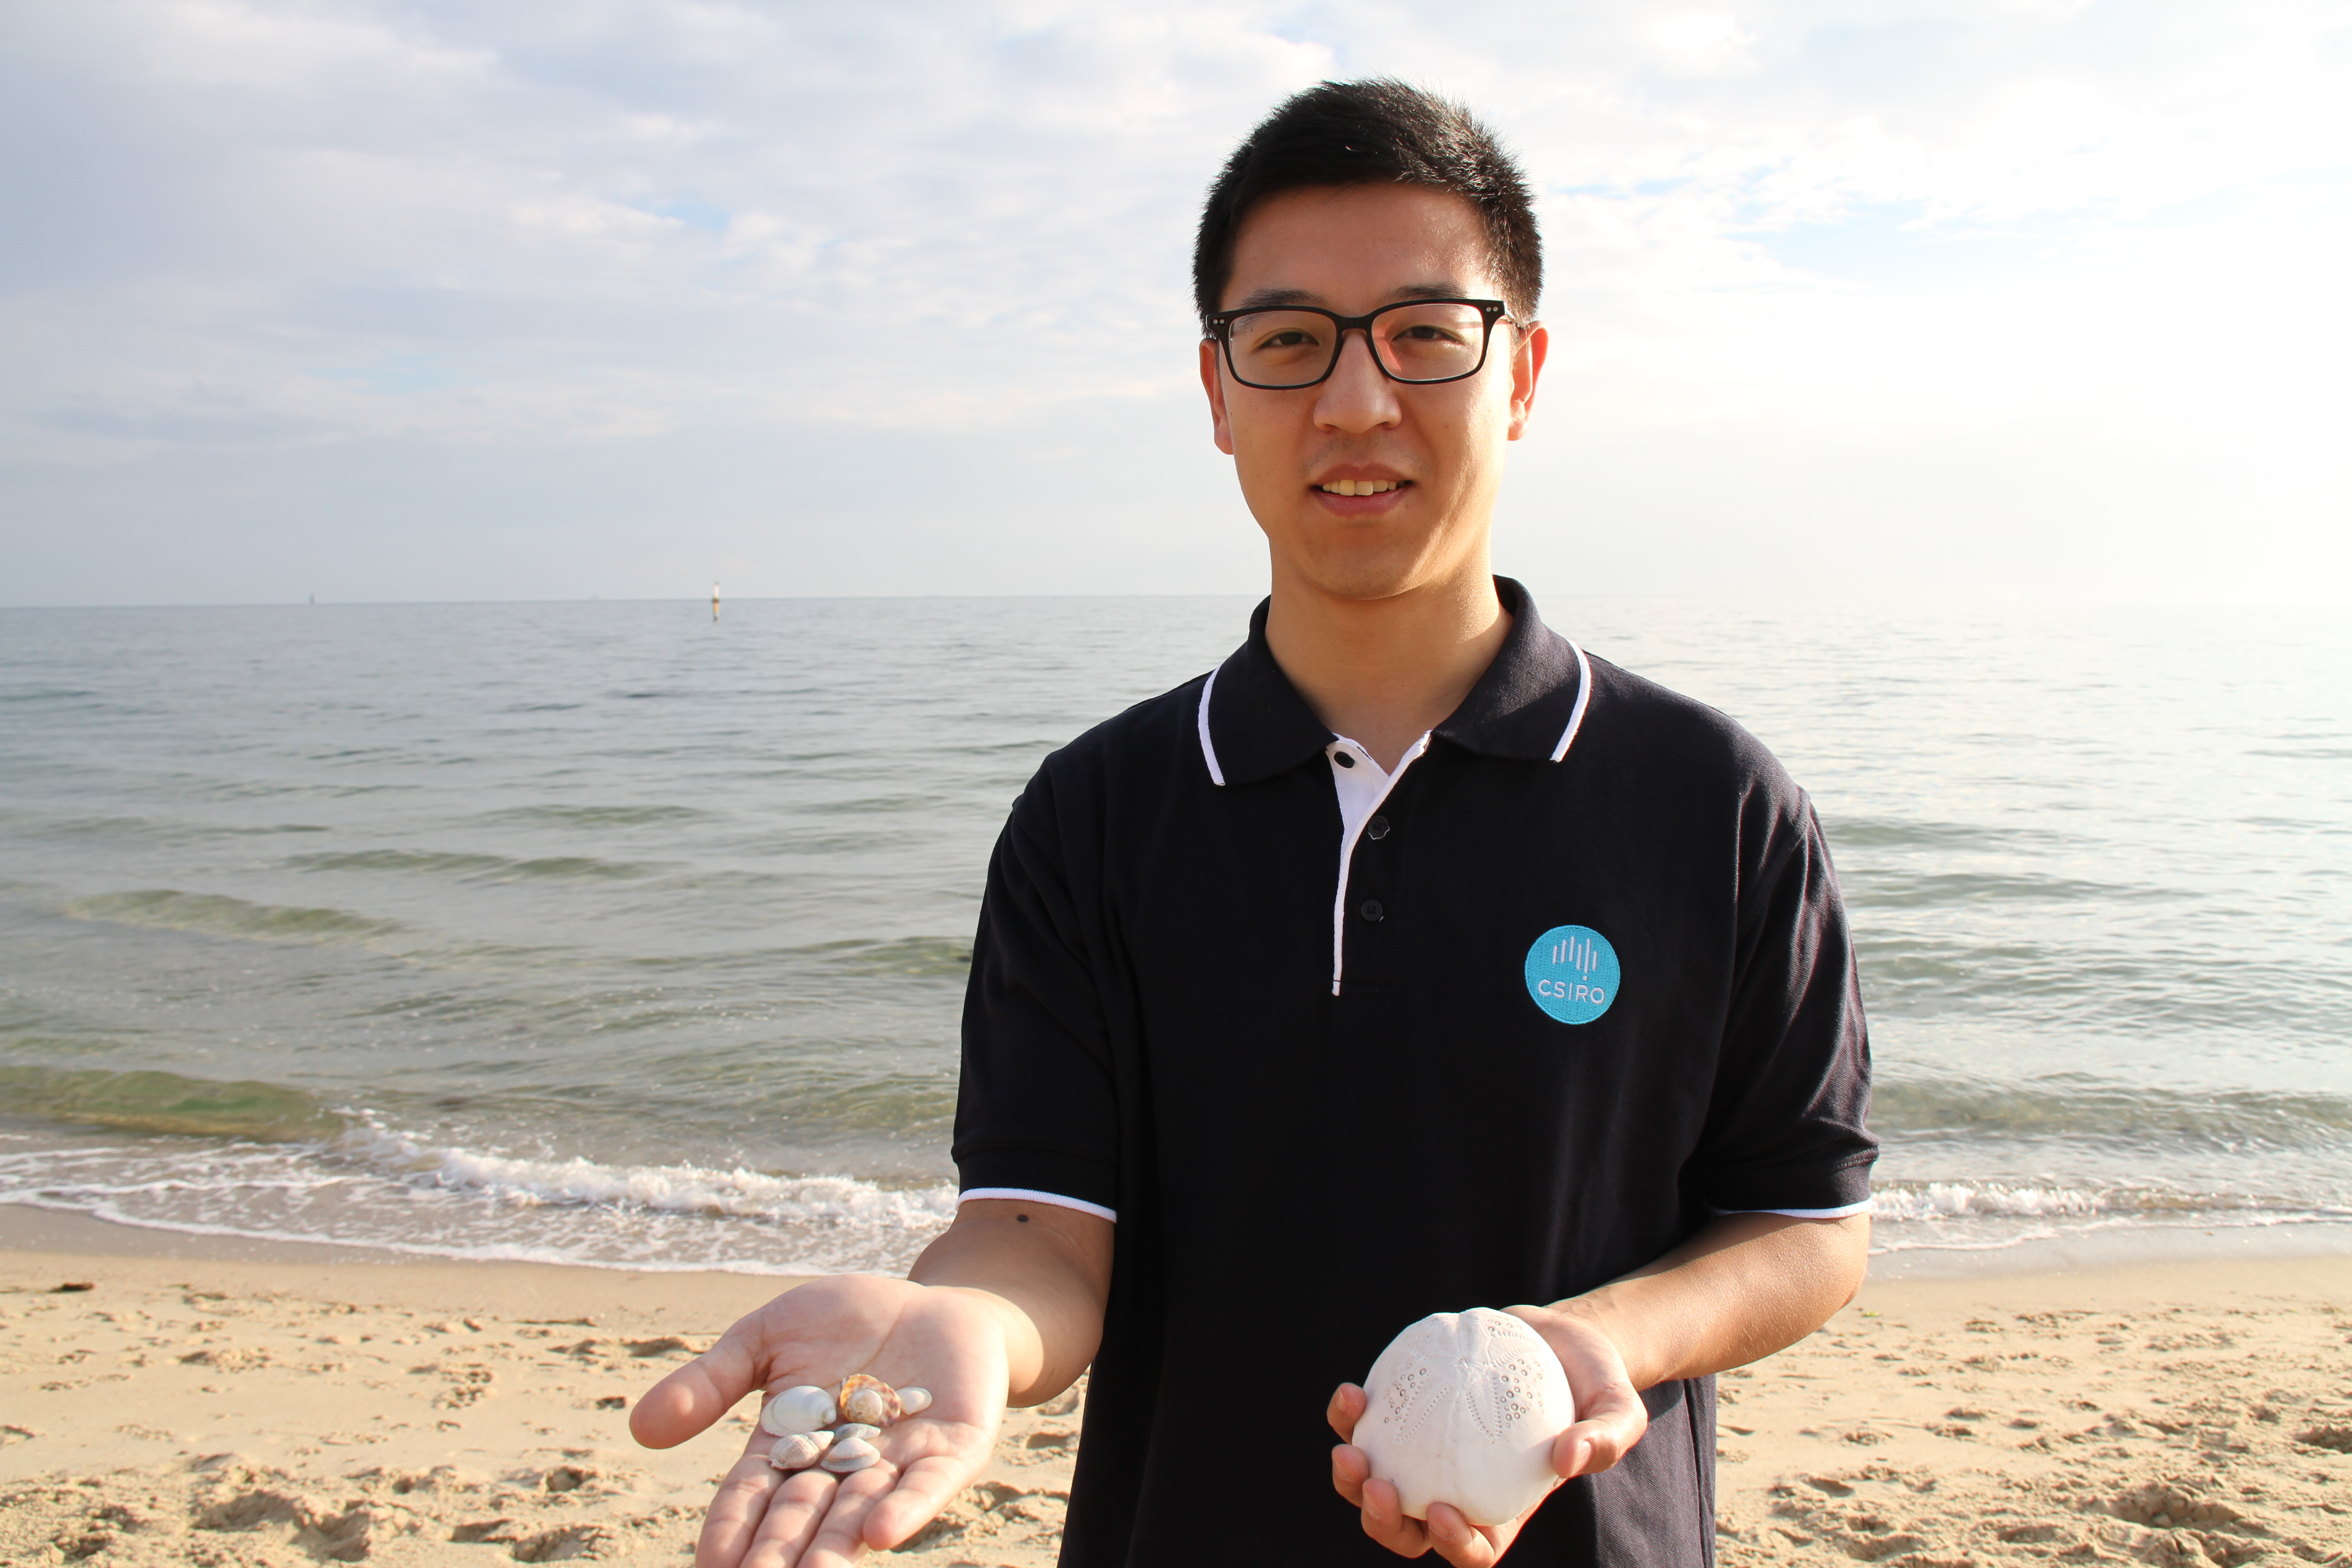 Scientist at beach holding seashells